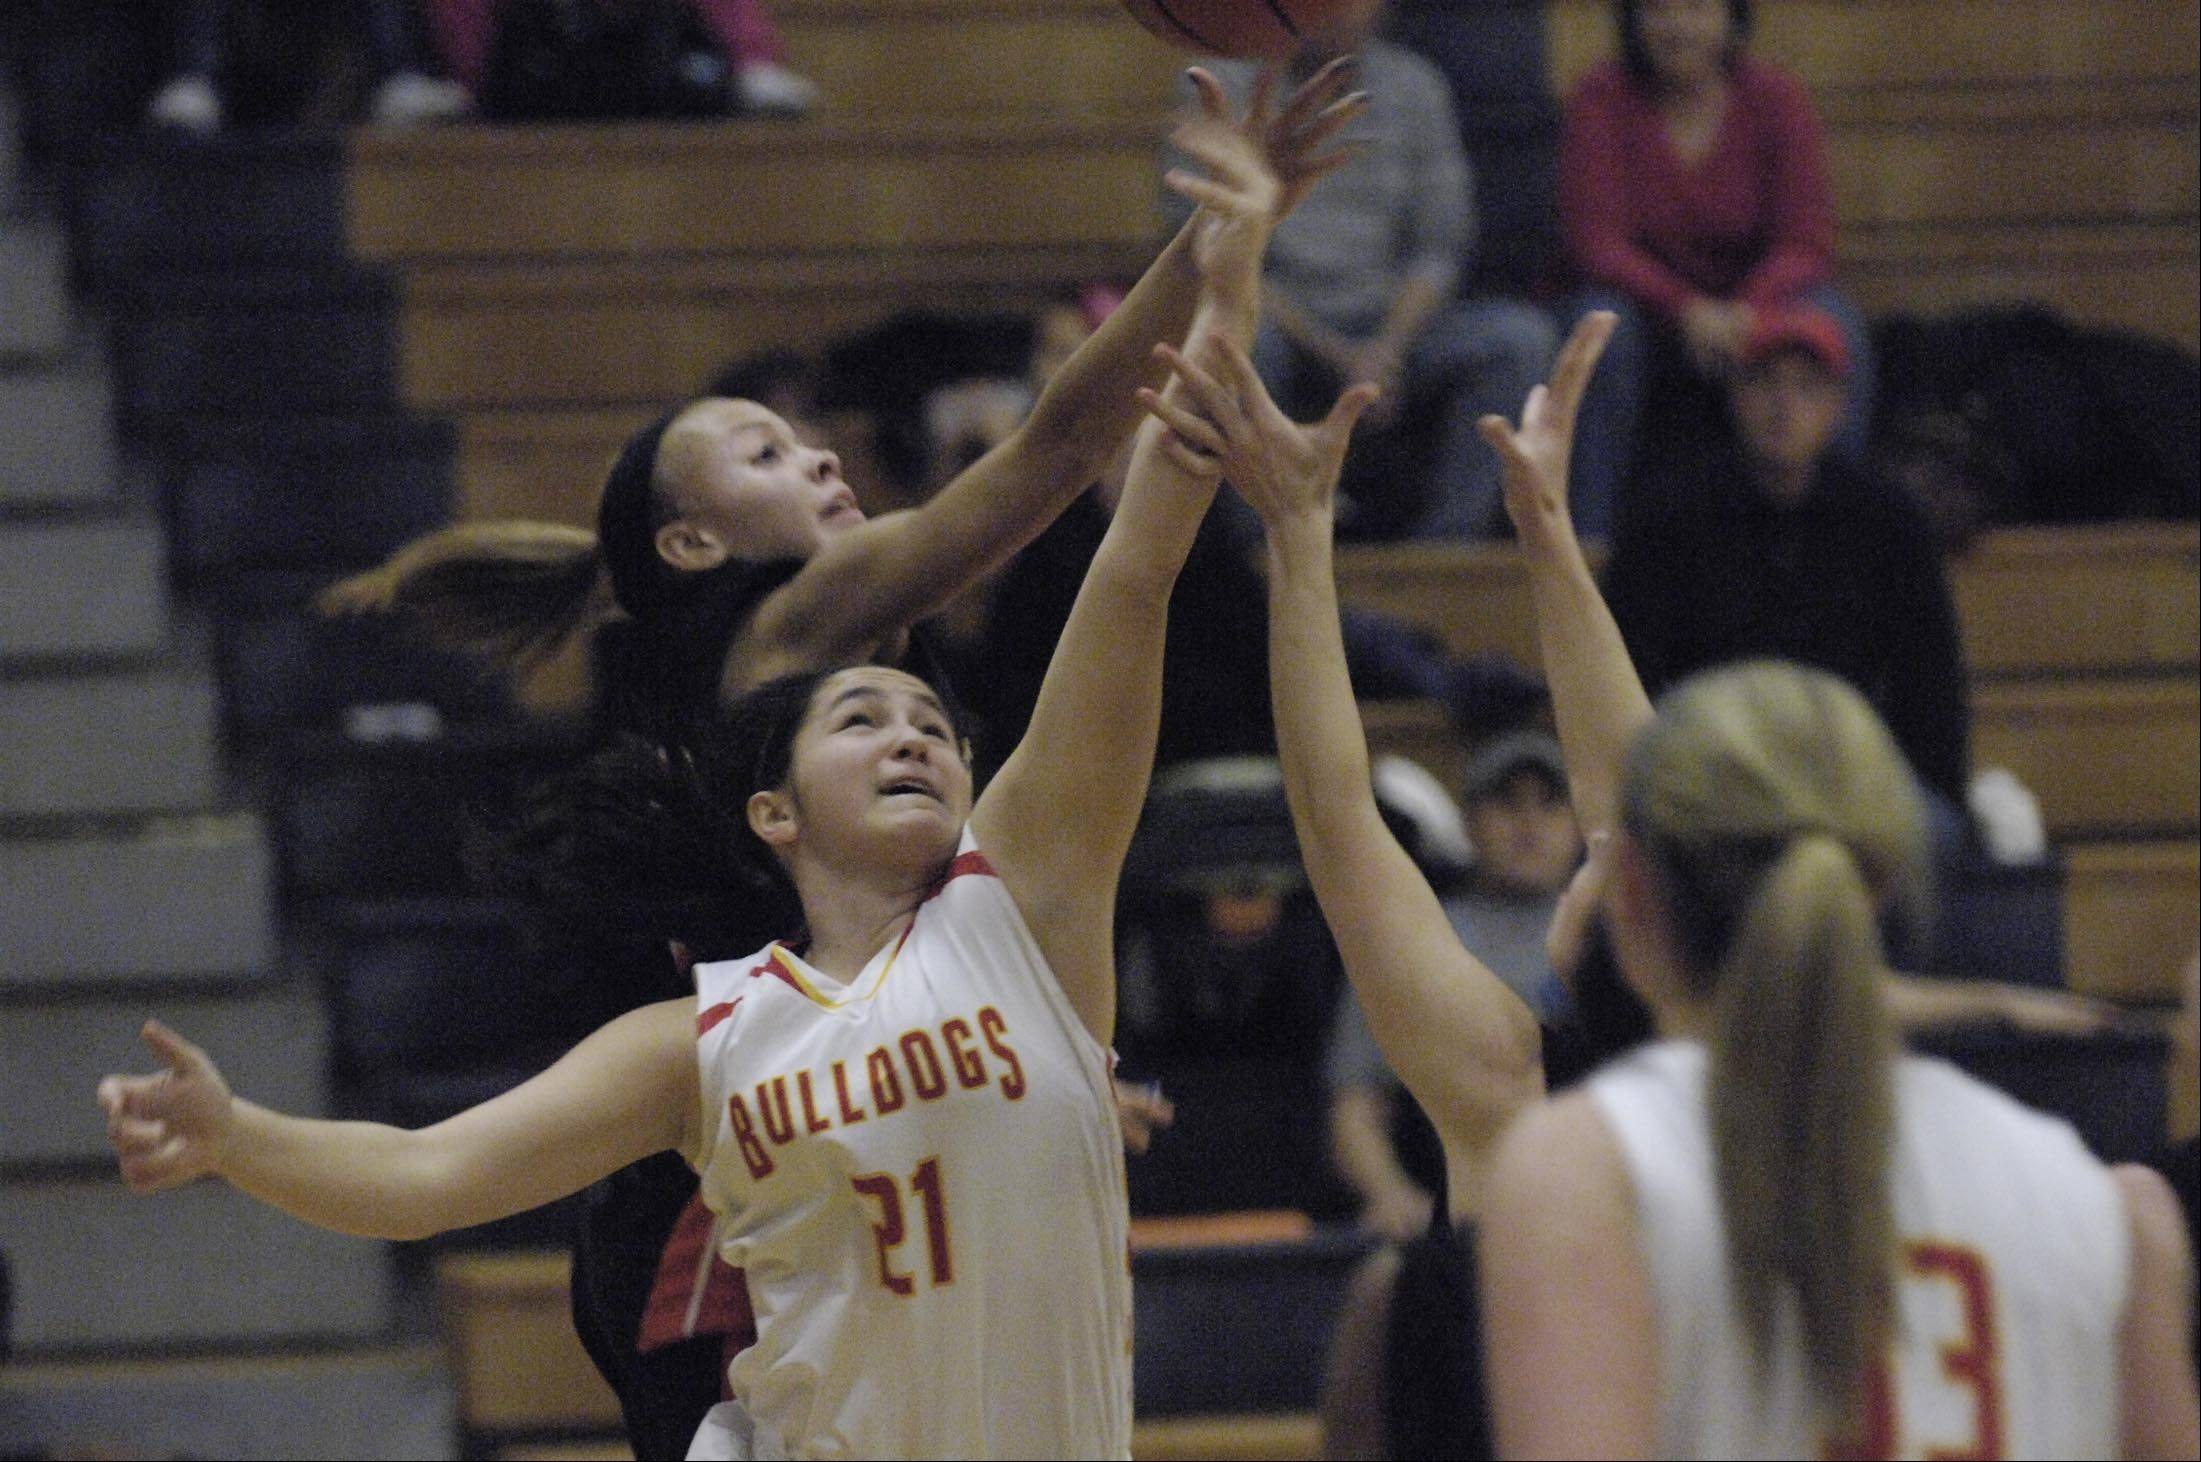 Batavia's Sami Villarreal fights for a rebound against Minooka.